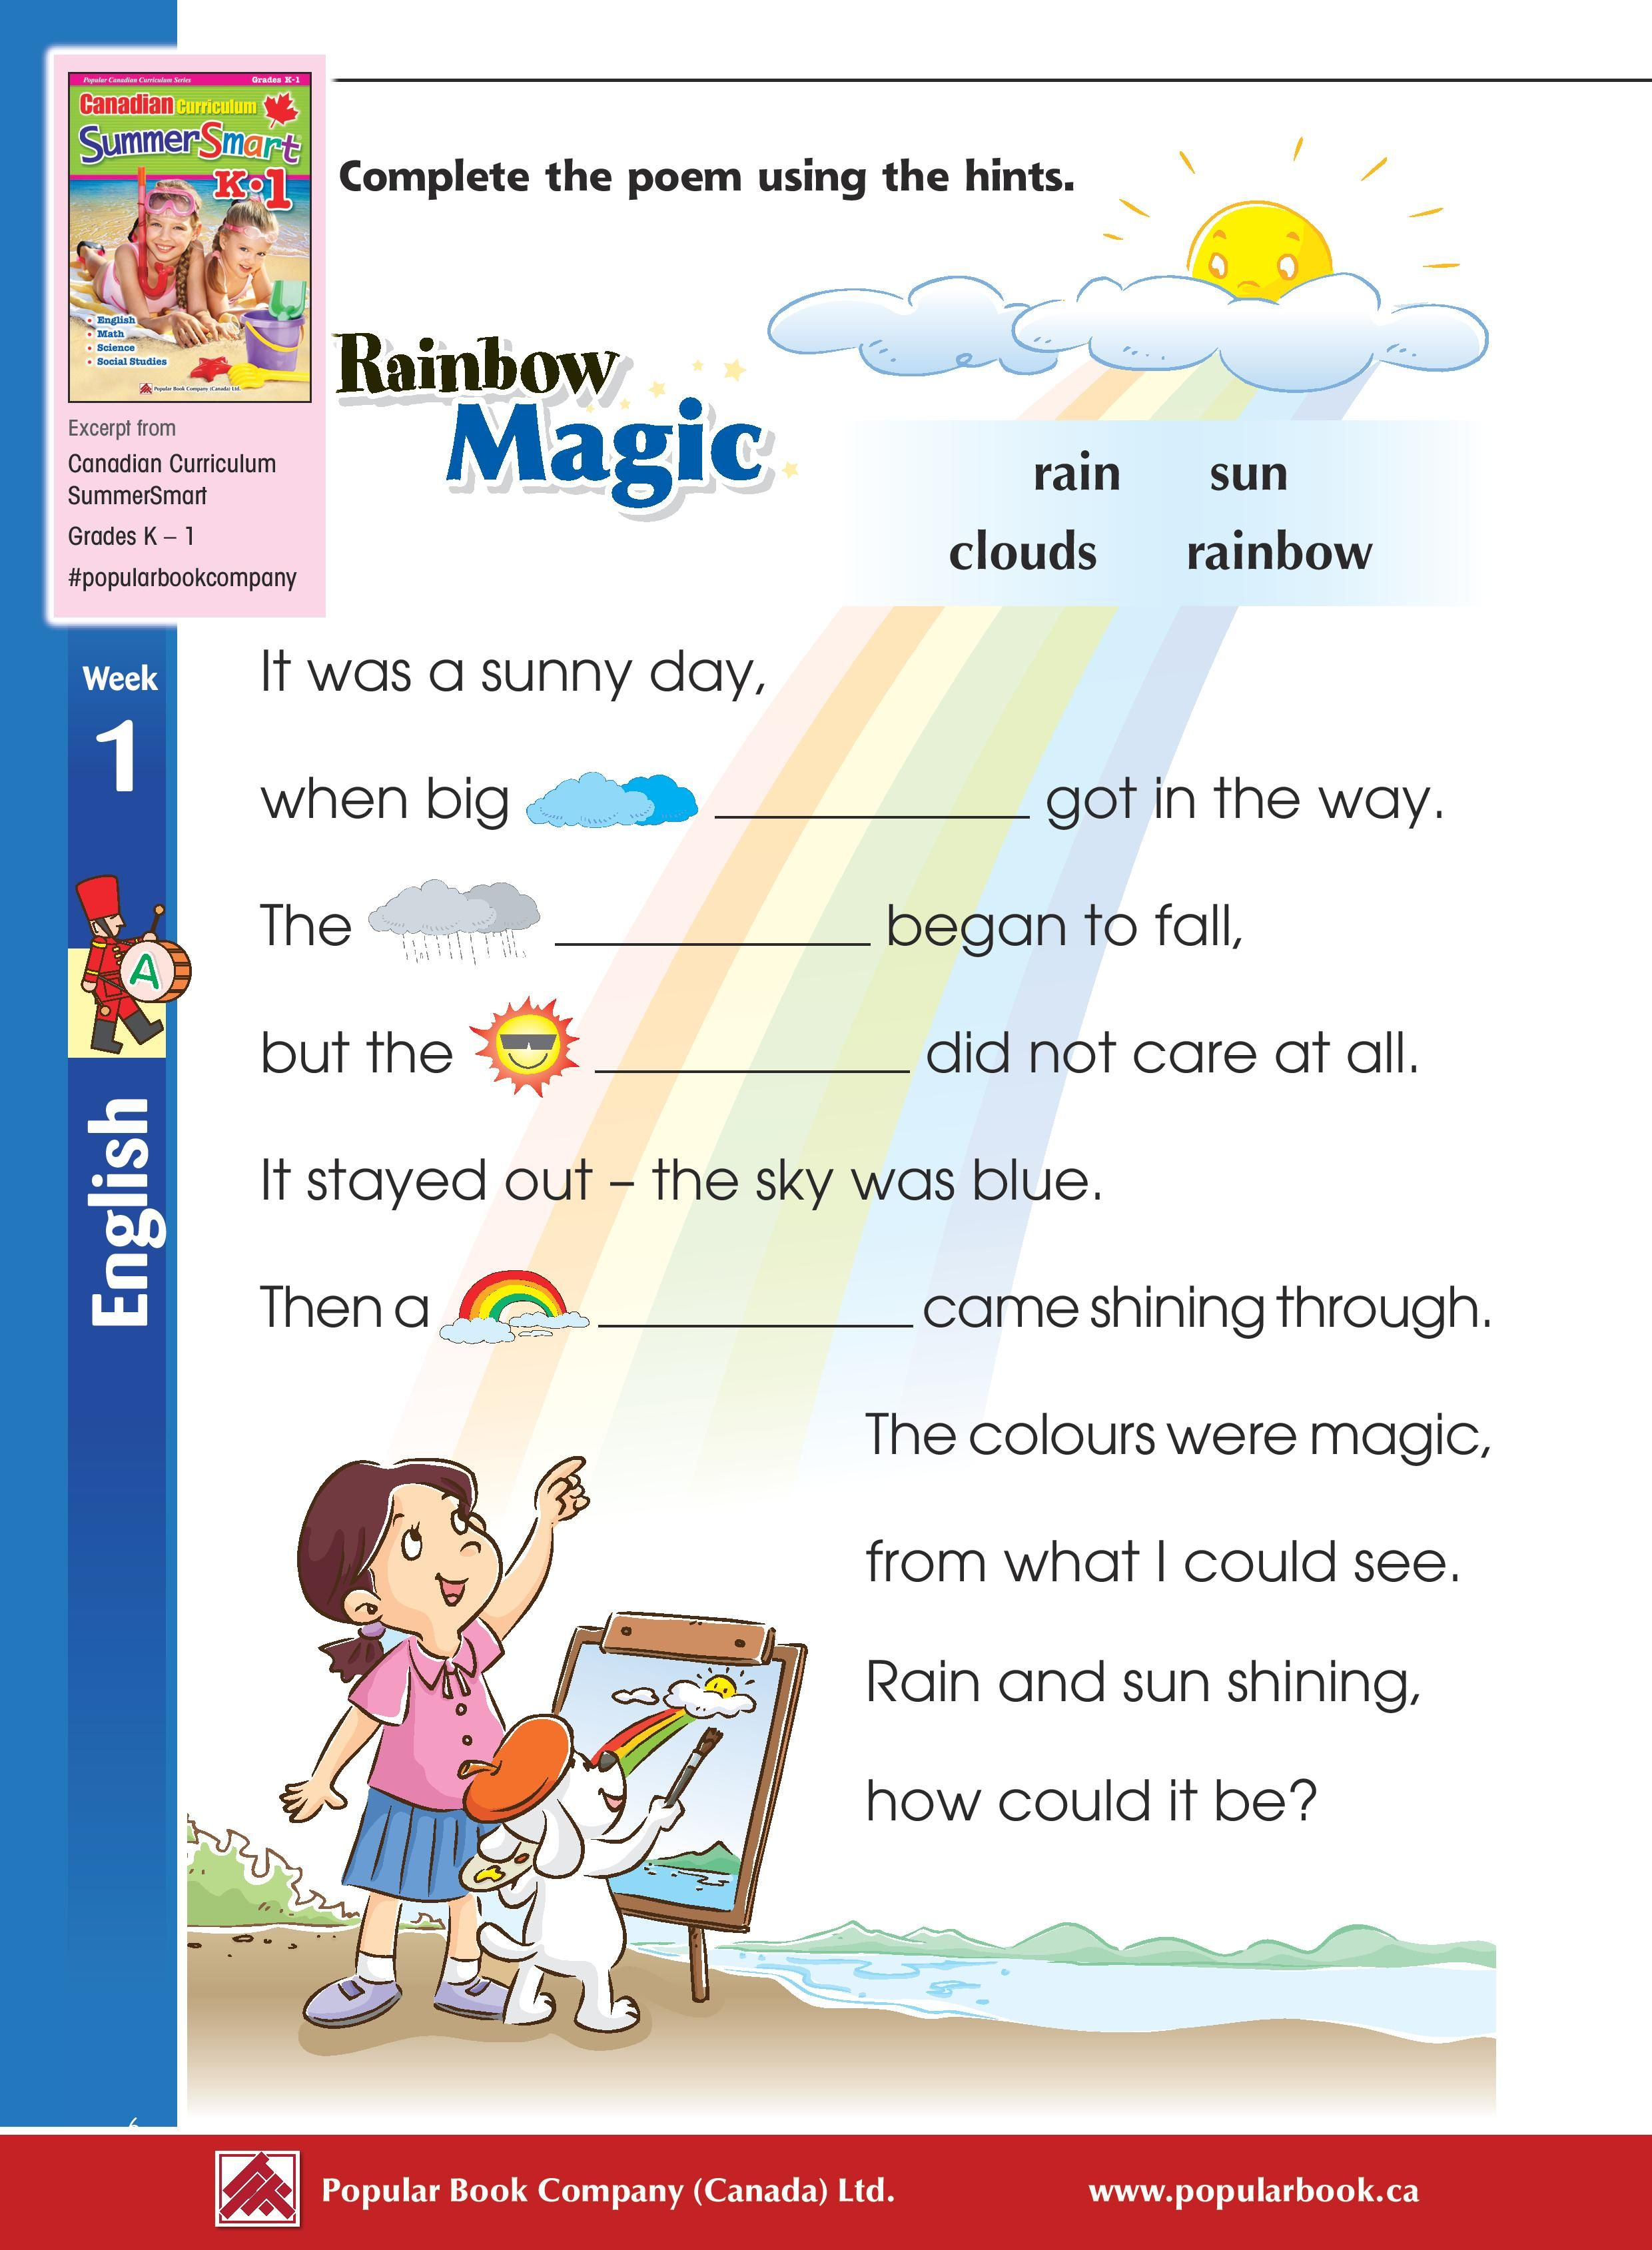 Download The Free Sample Pages Below To Let Your Child Try